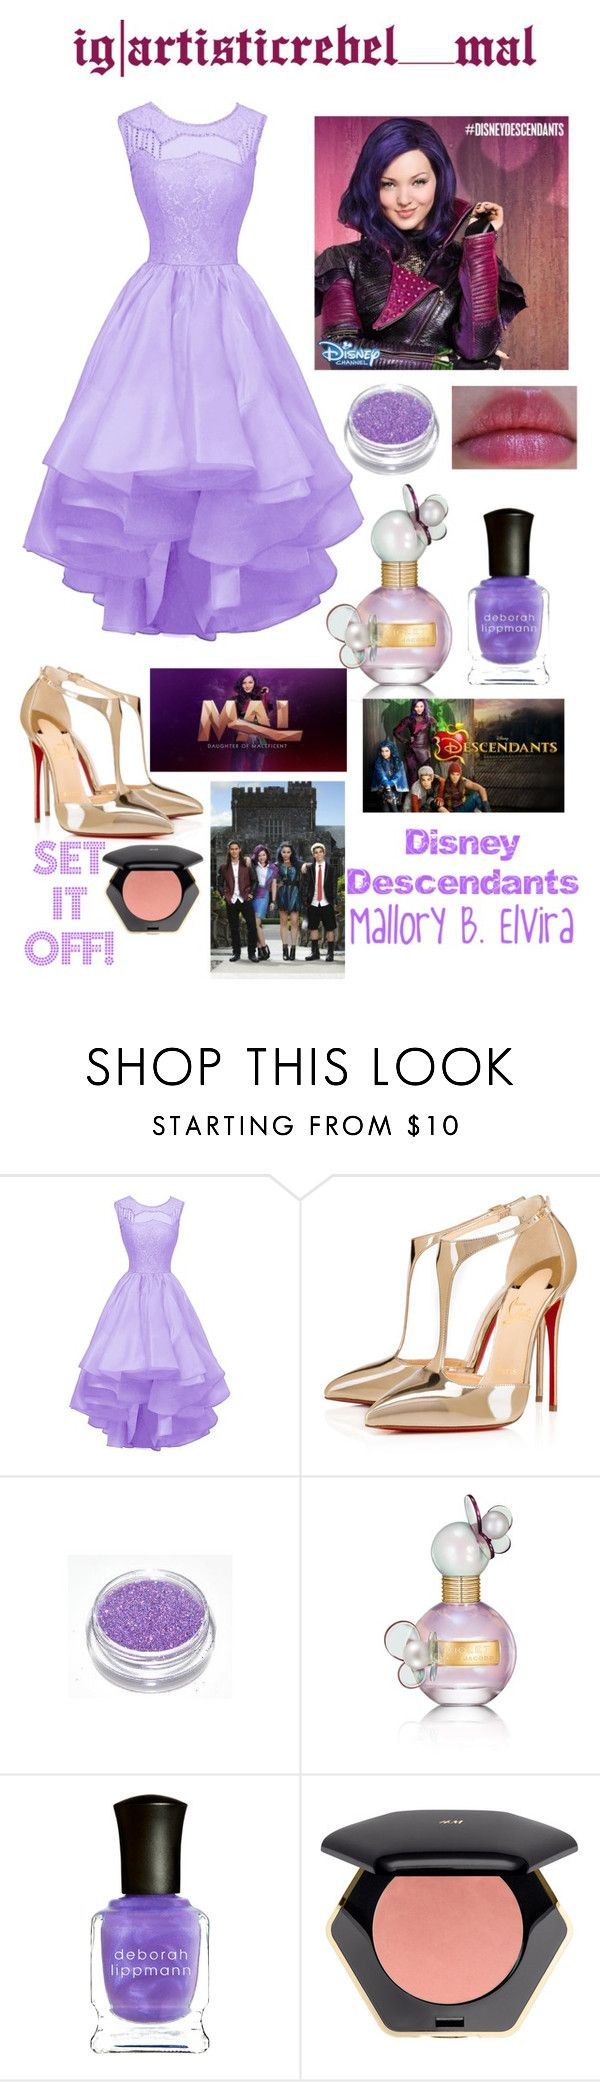 """Set It Off-Mal (Disney's Descendants)"" by fashionistamusiclover ❤ liked on Polyvore featuring Christian Louboutin, Marc Jacobs, Deborah Lippmann, Disney and H&M"